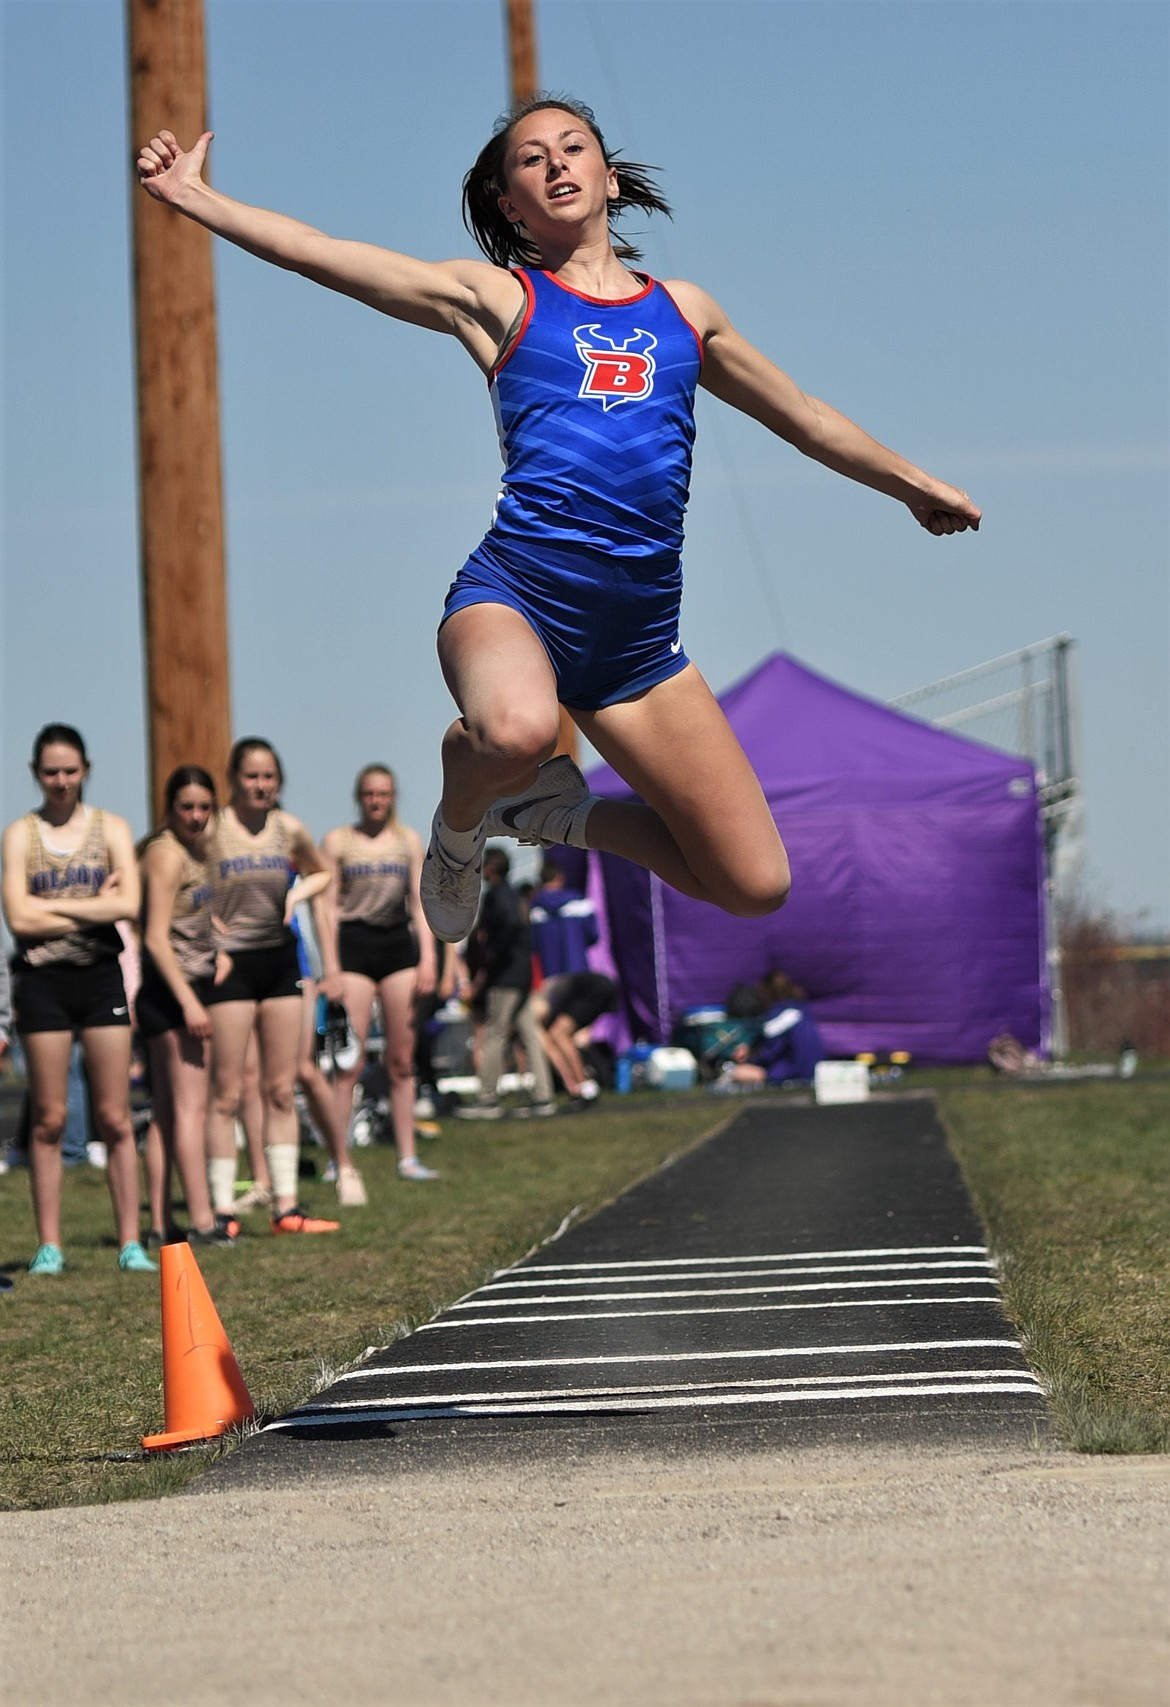 Audrey Buenz set a new personal best of 14 feet, 6 inches in Ronan Saturday as she finished third in the long jump at the Dilly Bar Invitational. (Scot Heisel for the Eagle)